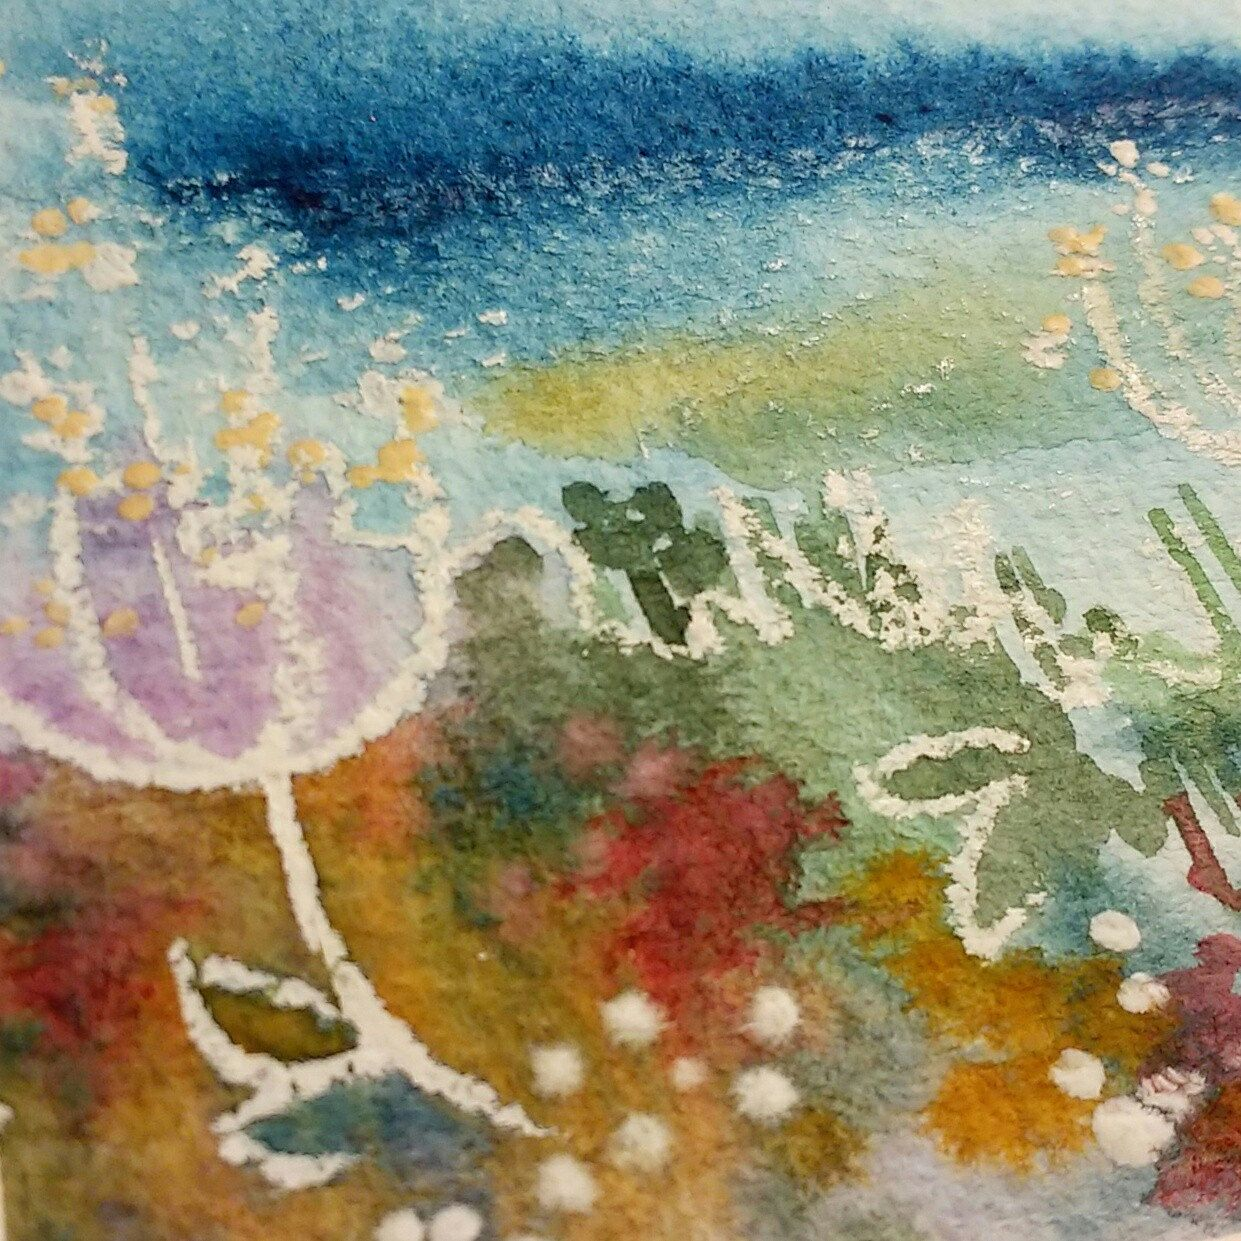 Lots of colours and textures in this abstract watercolour sketch ...